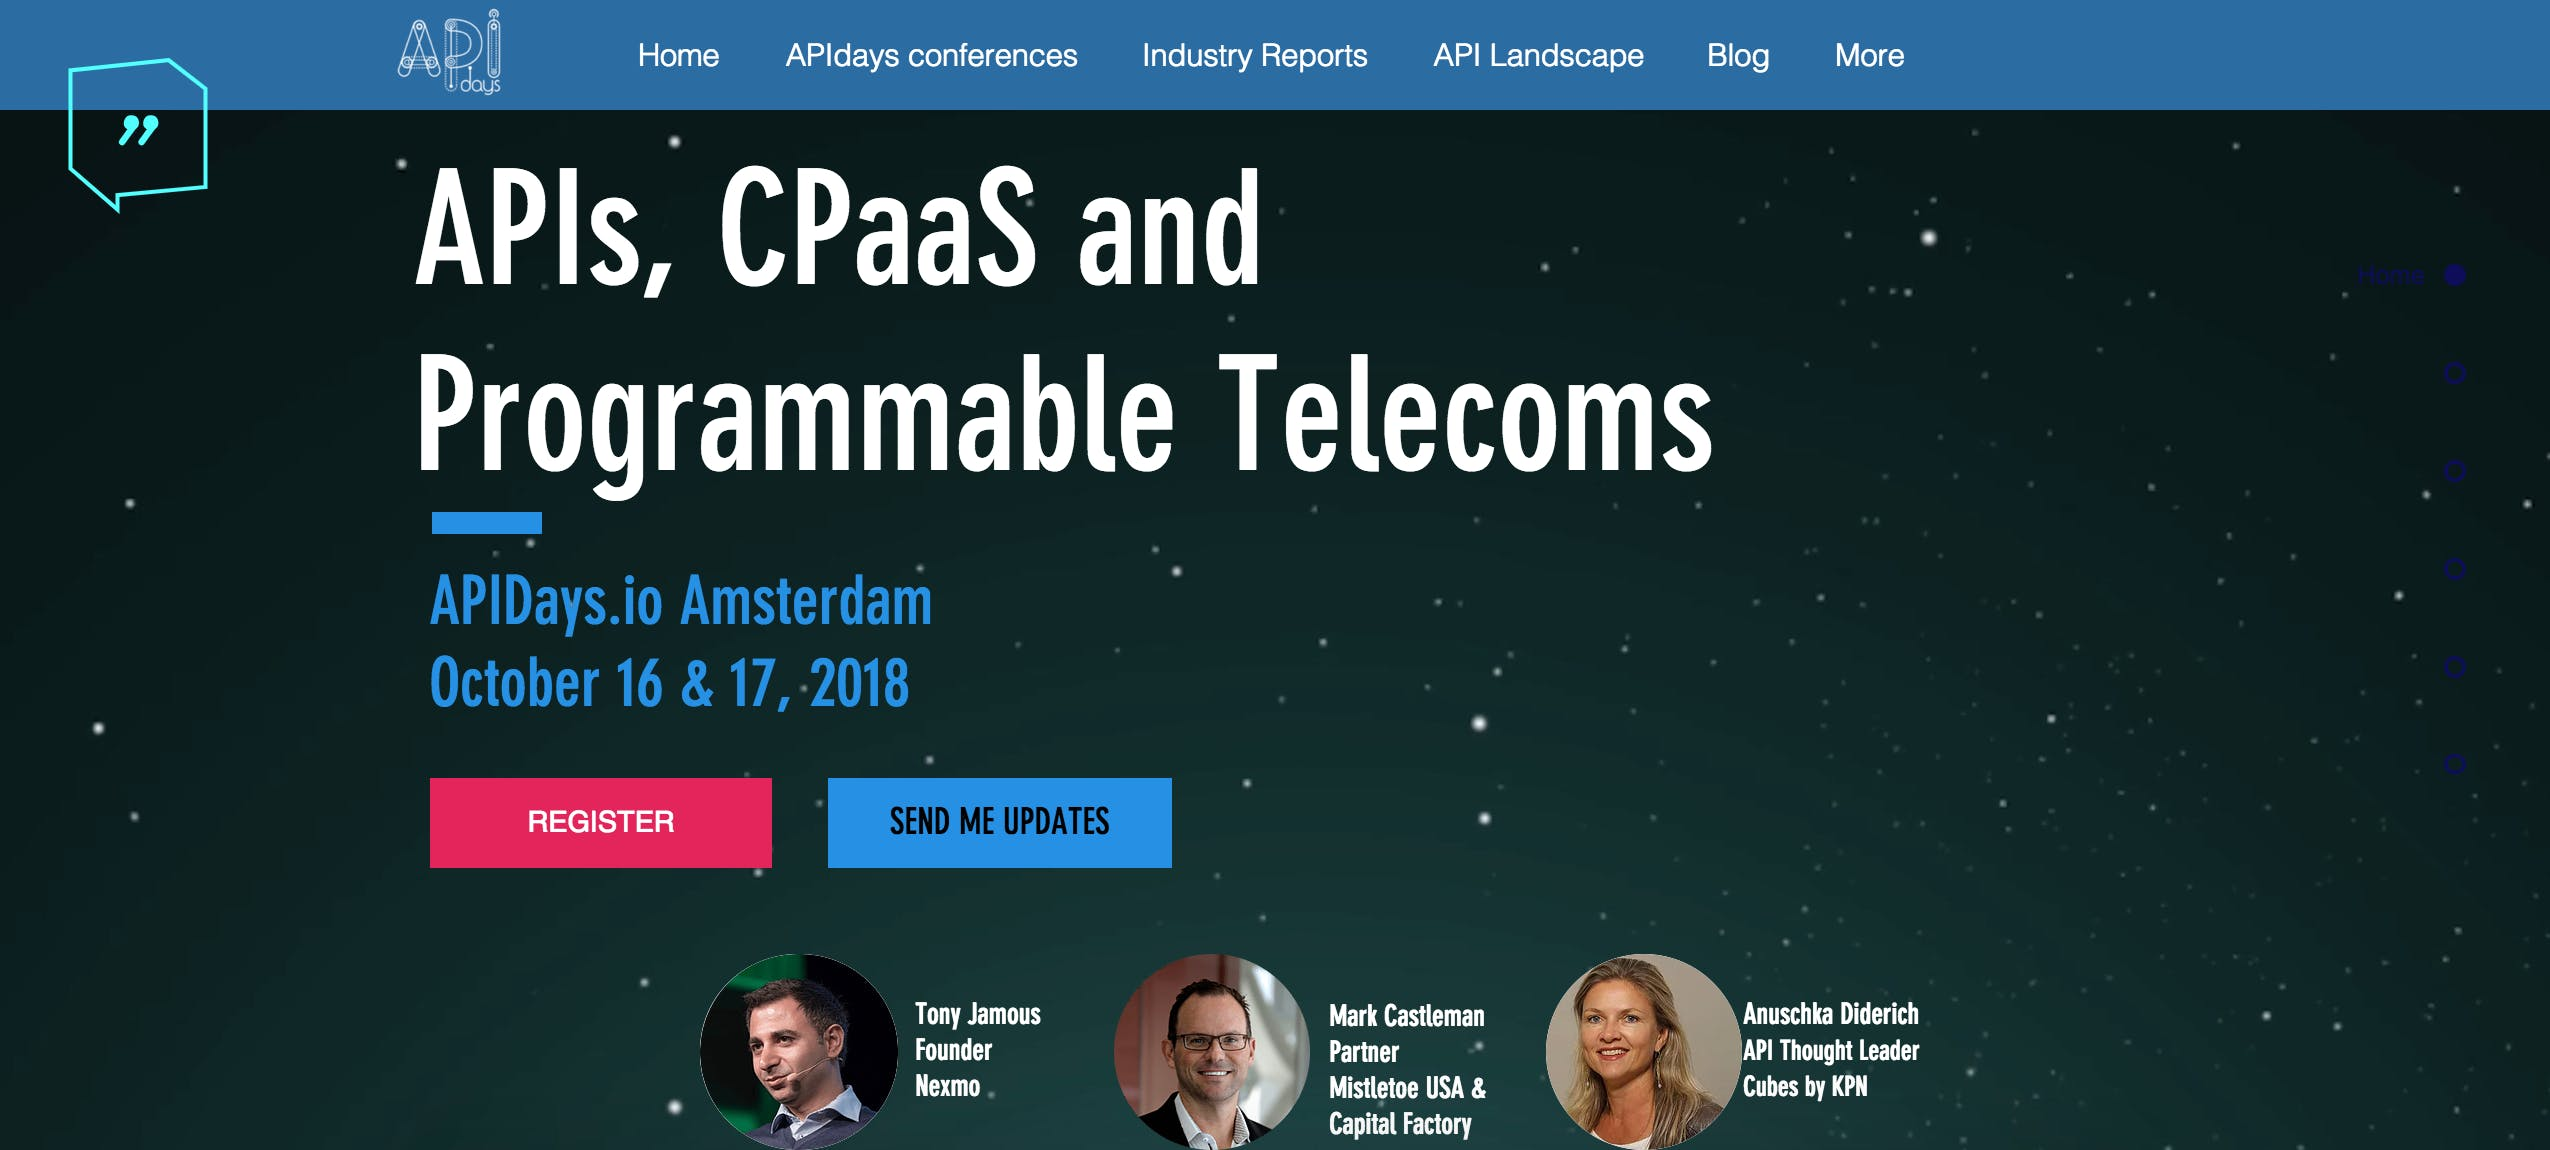 APIDAYS AMSTERDAM 2018 - API'S, CPAAS AND PROGRAMMABLE TELECOMS